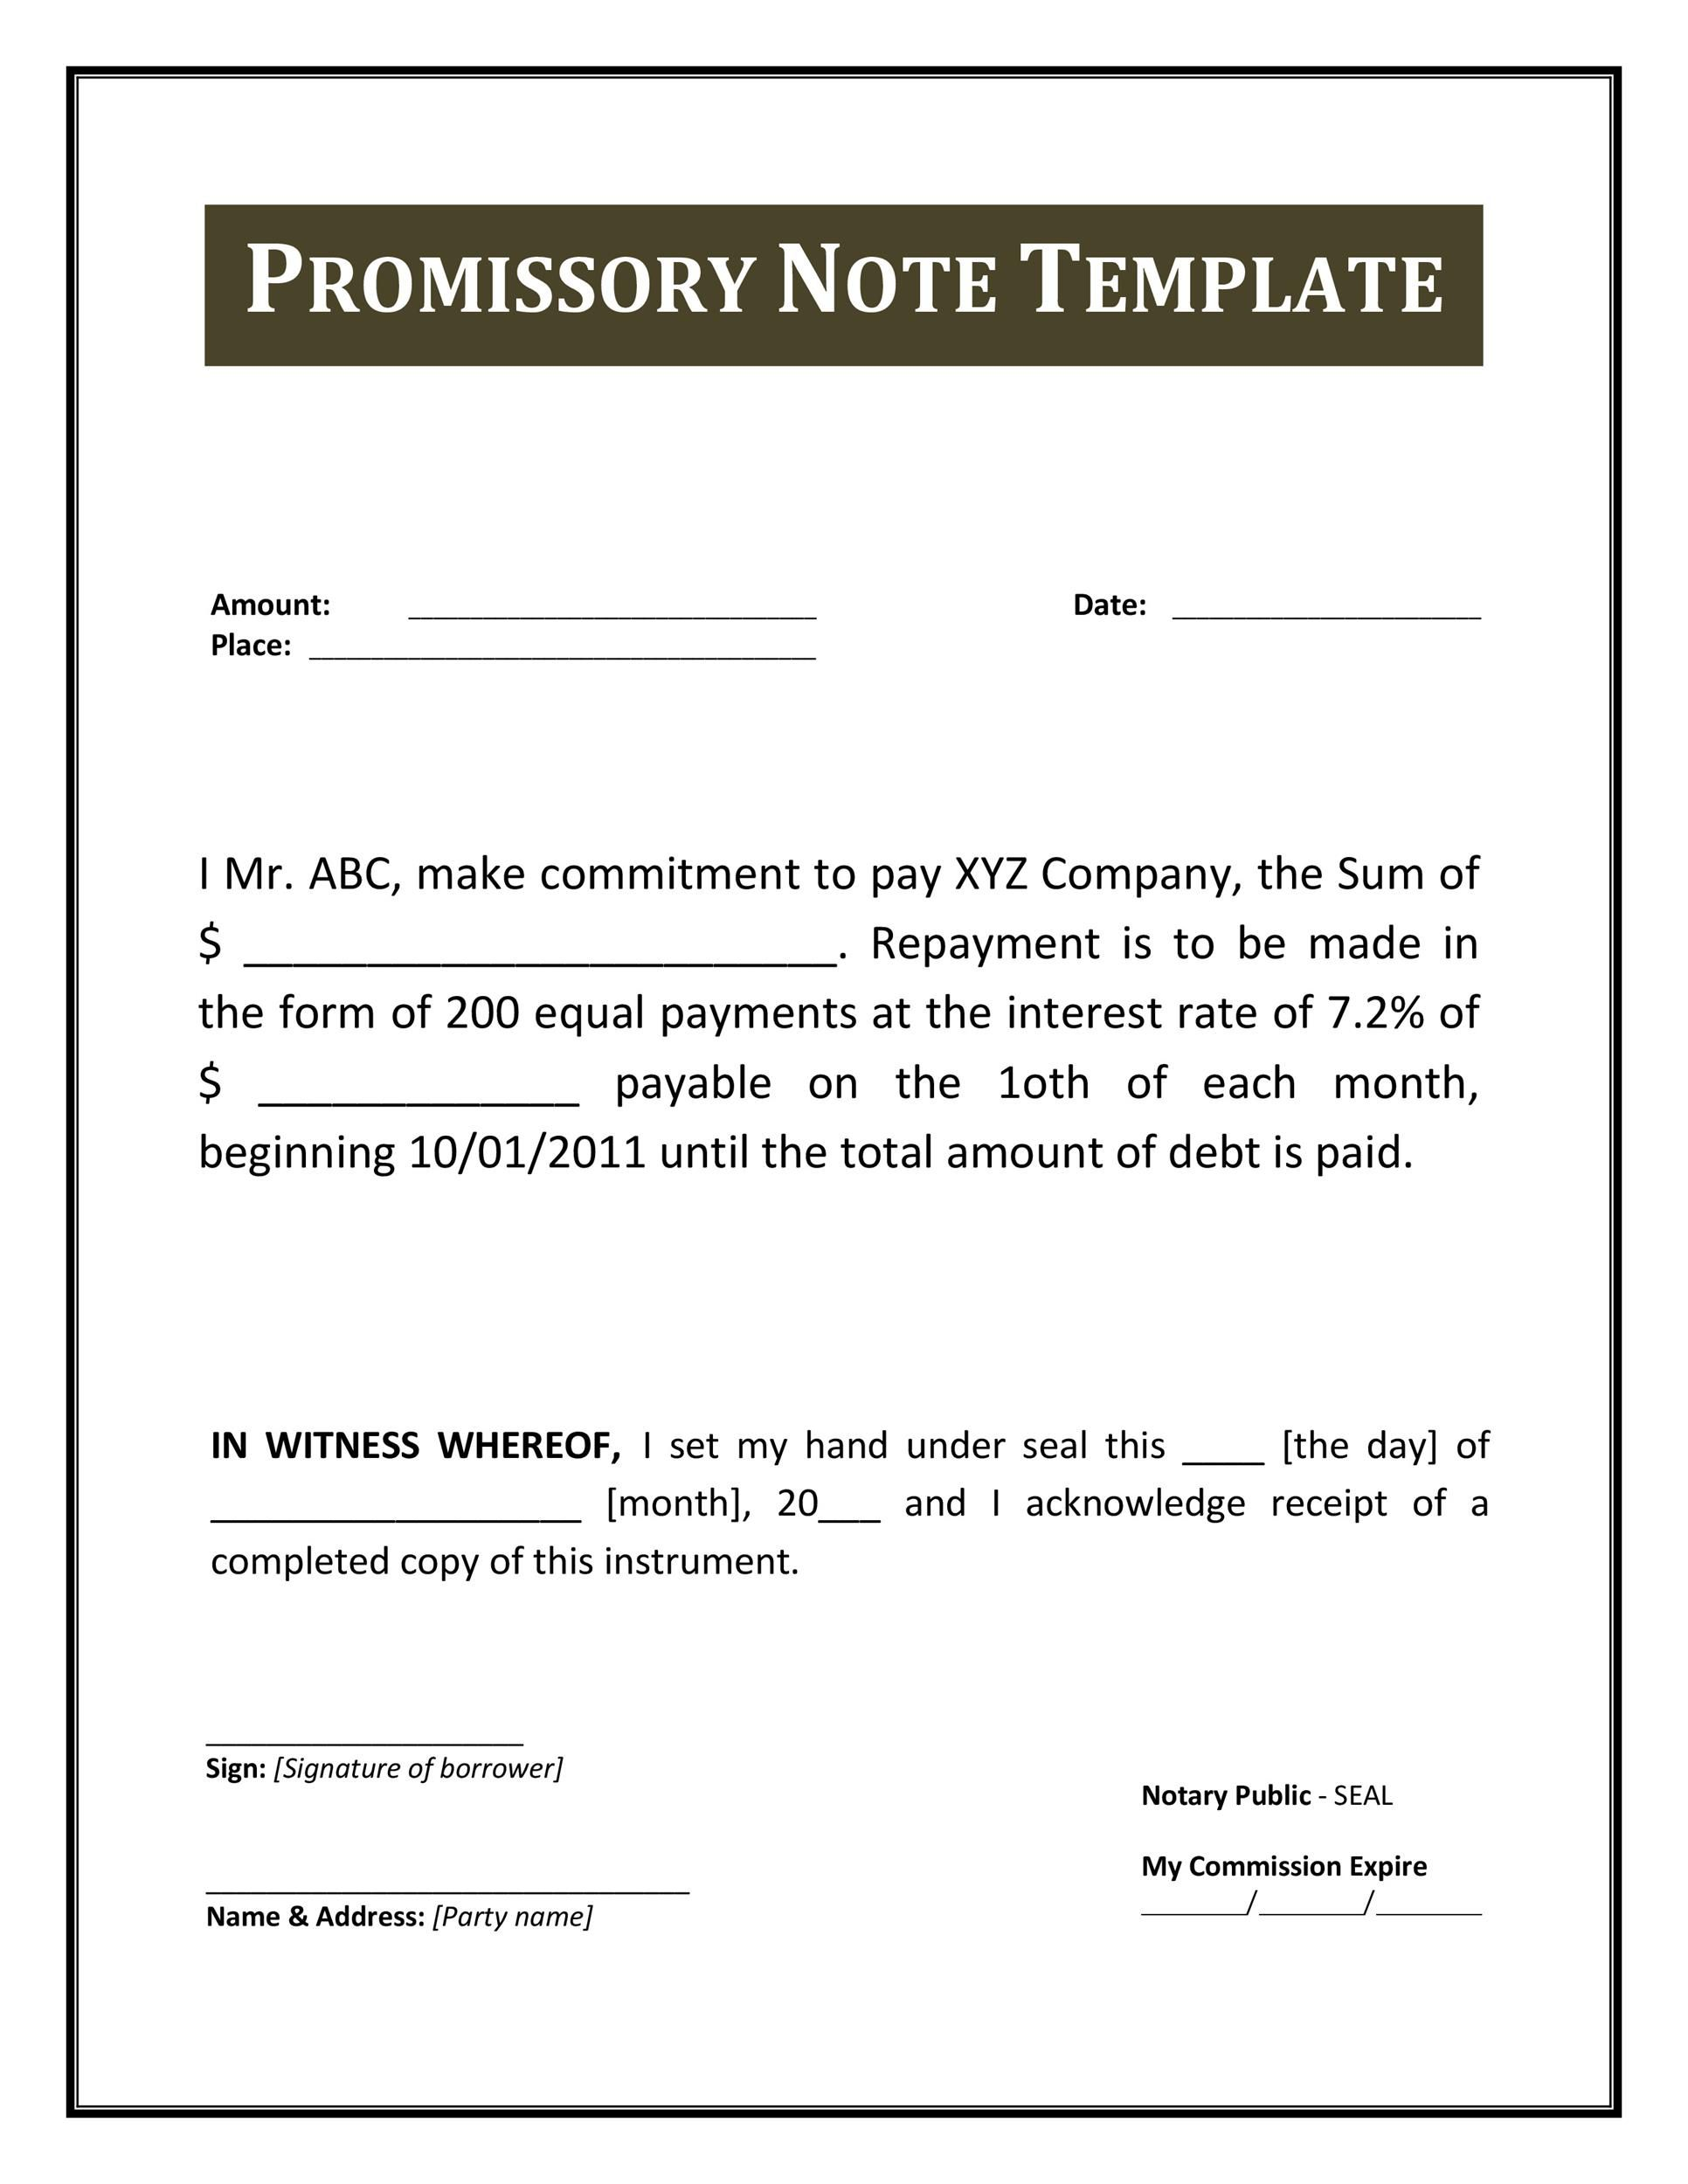 007 Unbelievable Template For Promissory Note Design  Personal Loan Free UkFull